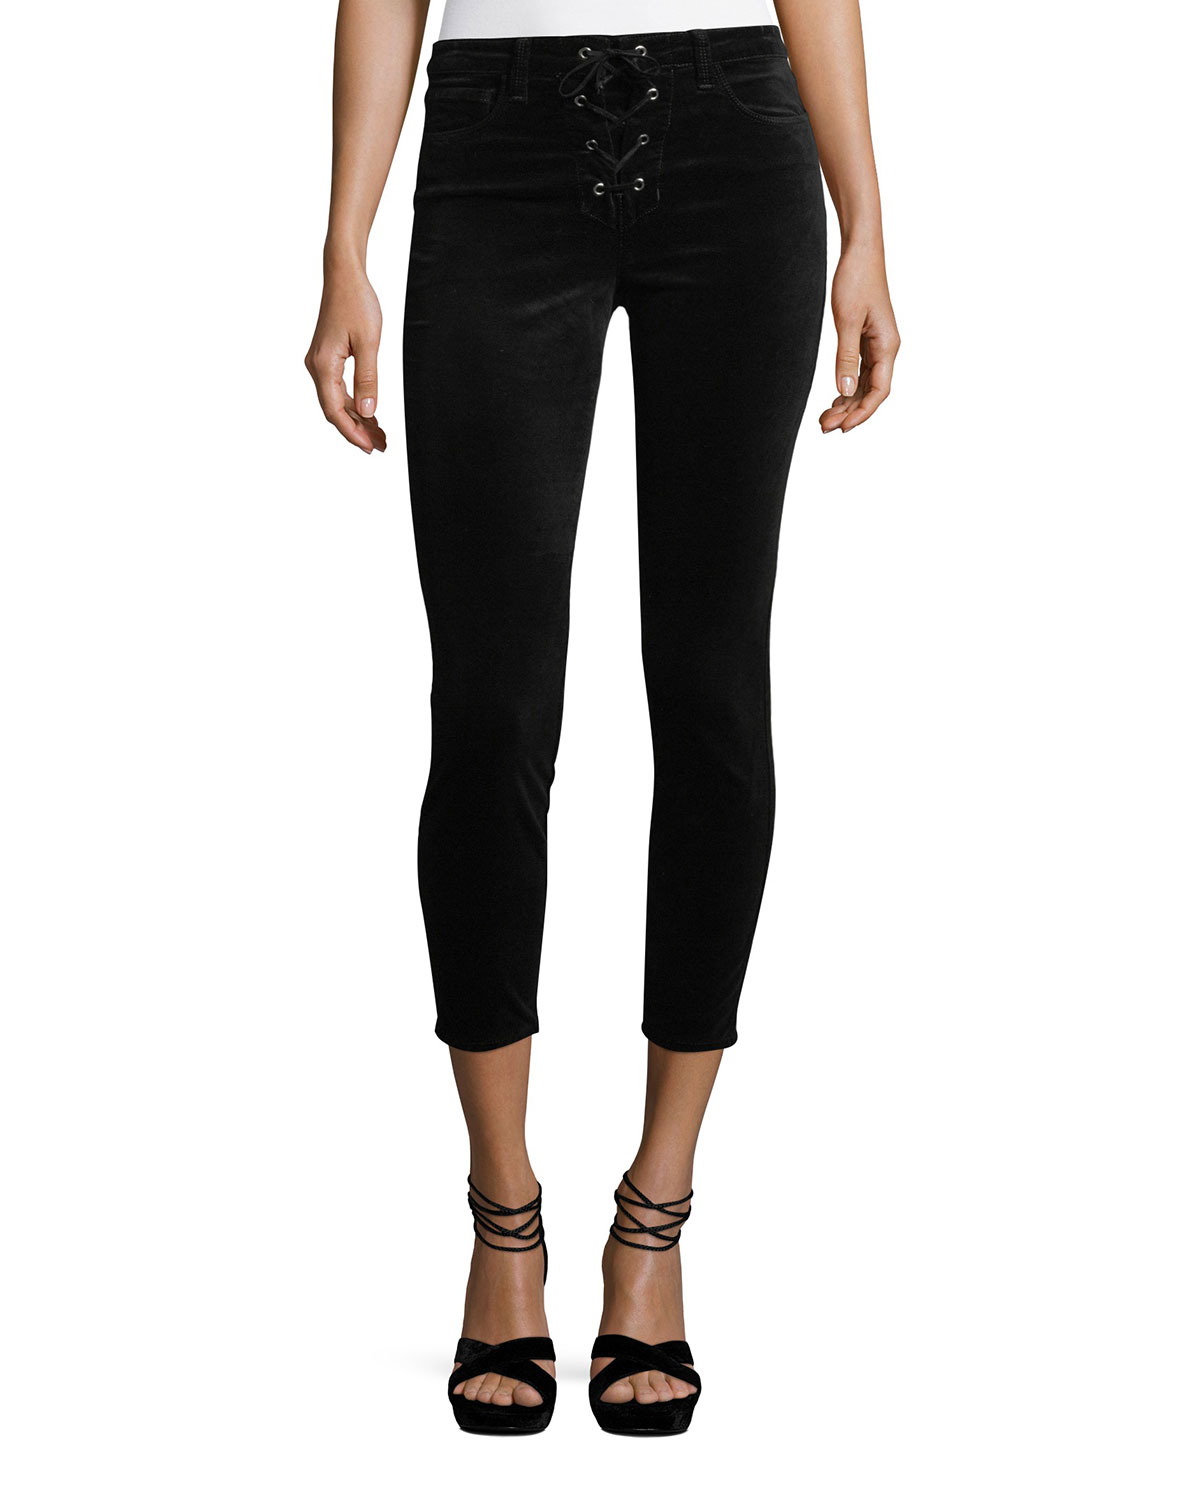 Cherie Lace-Up Skinny-Leg Cropped Velvet Pants